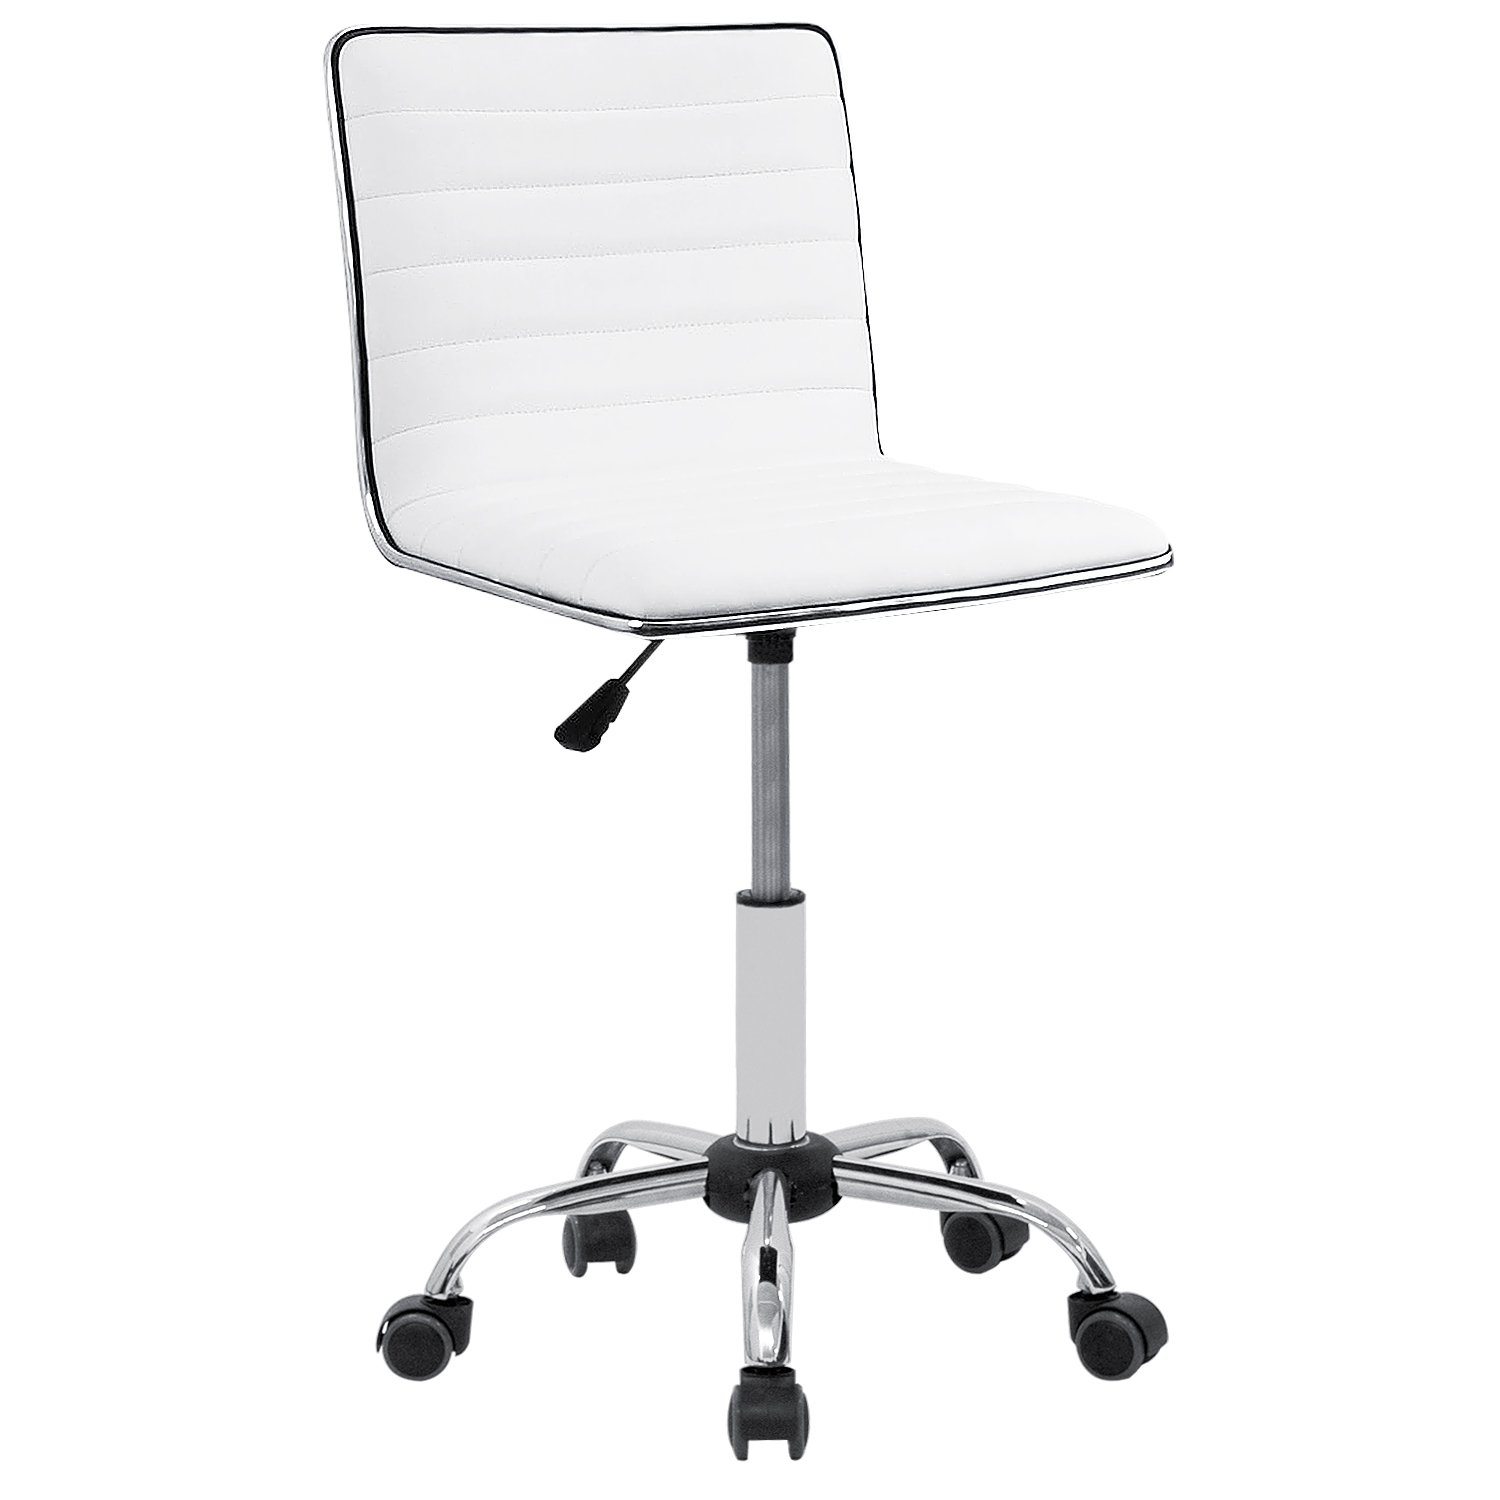 Furmax Mid Back Task Chair,Low Back Leather Swivel Office Desk Chair,Computer Chair with Armless Ribbed Soft Upholstery (White)